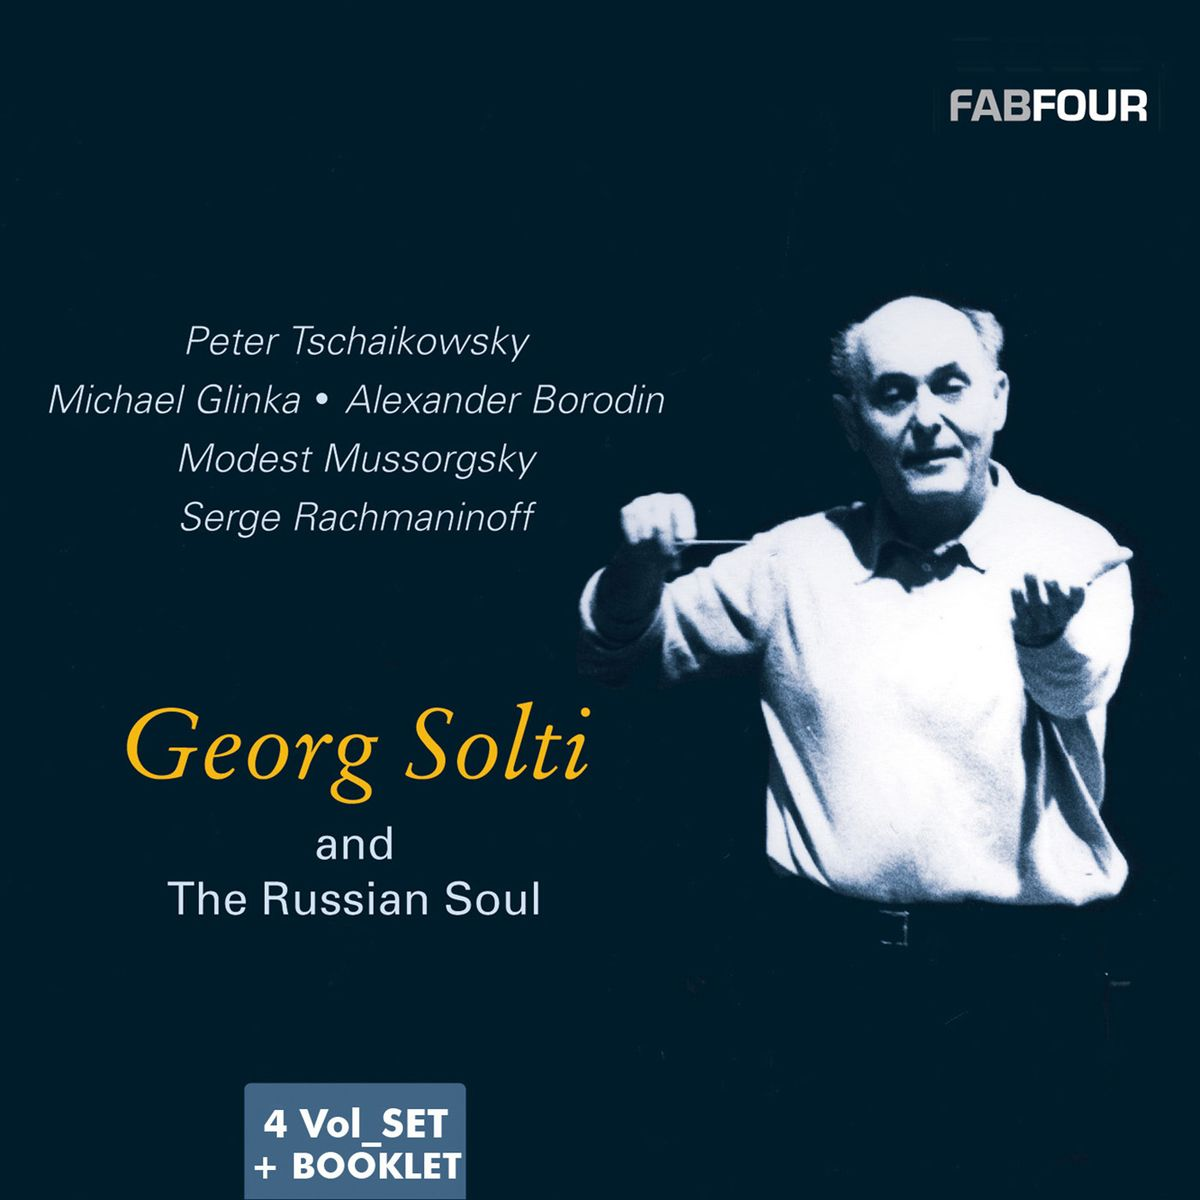 Georg Solti. Georg Solti and The Russian Soul (4 CD)